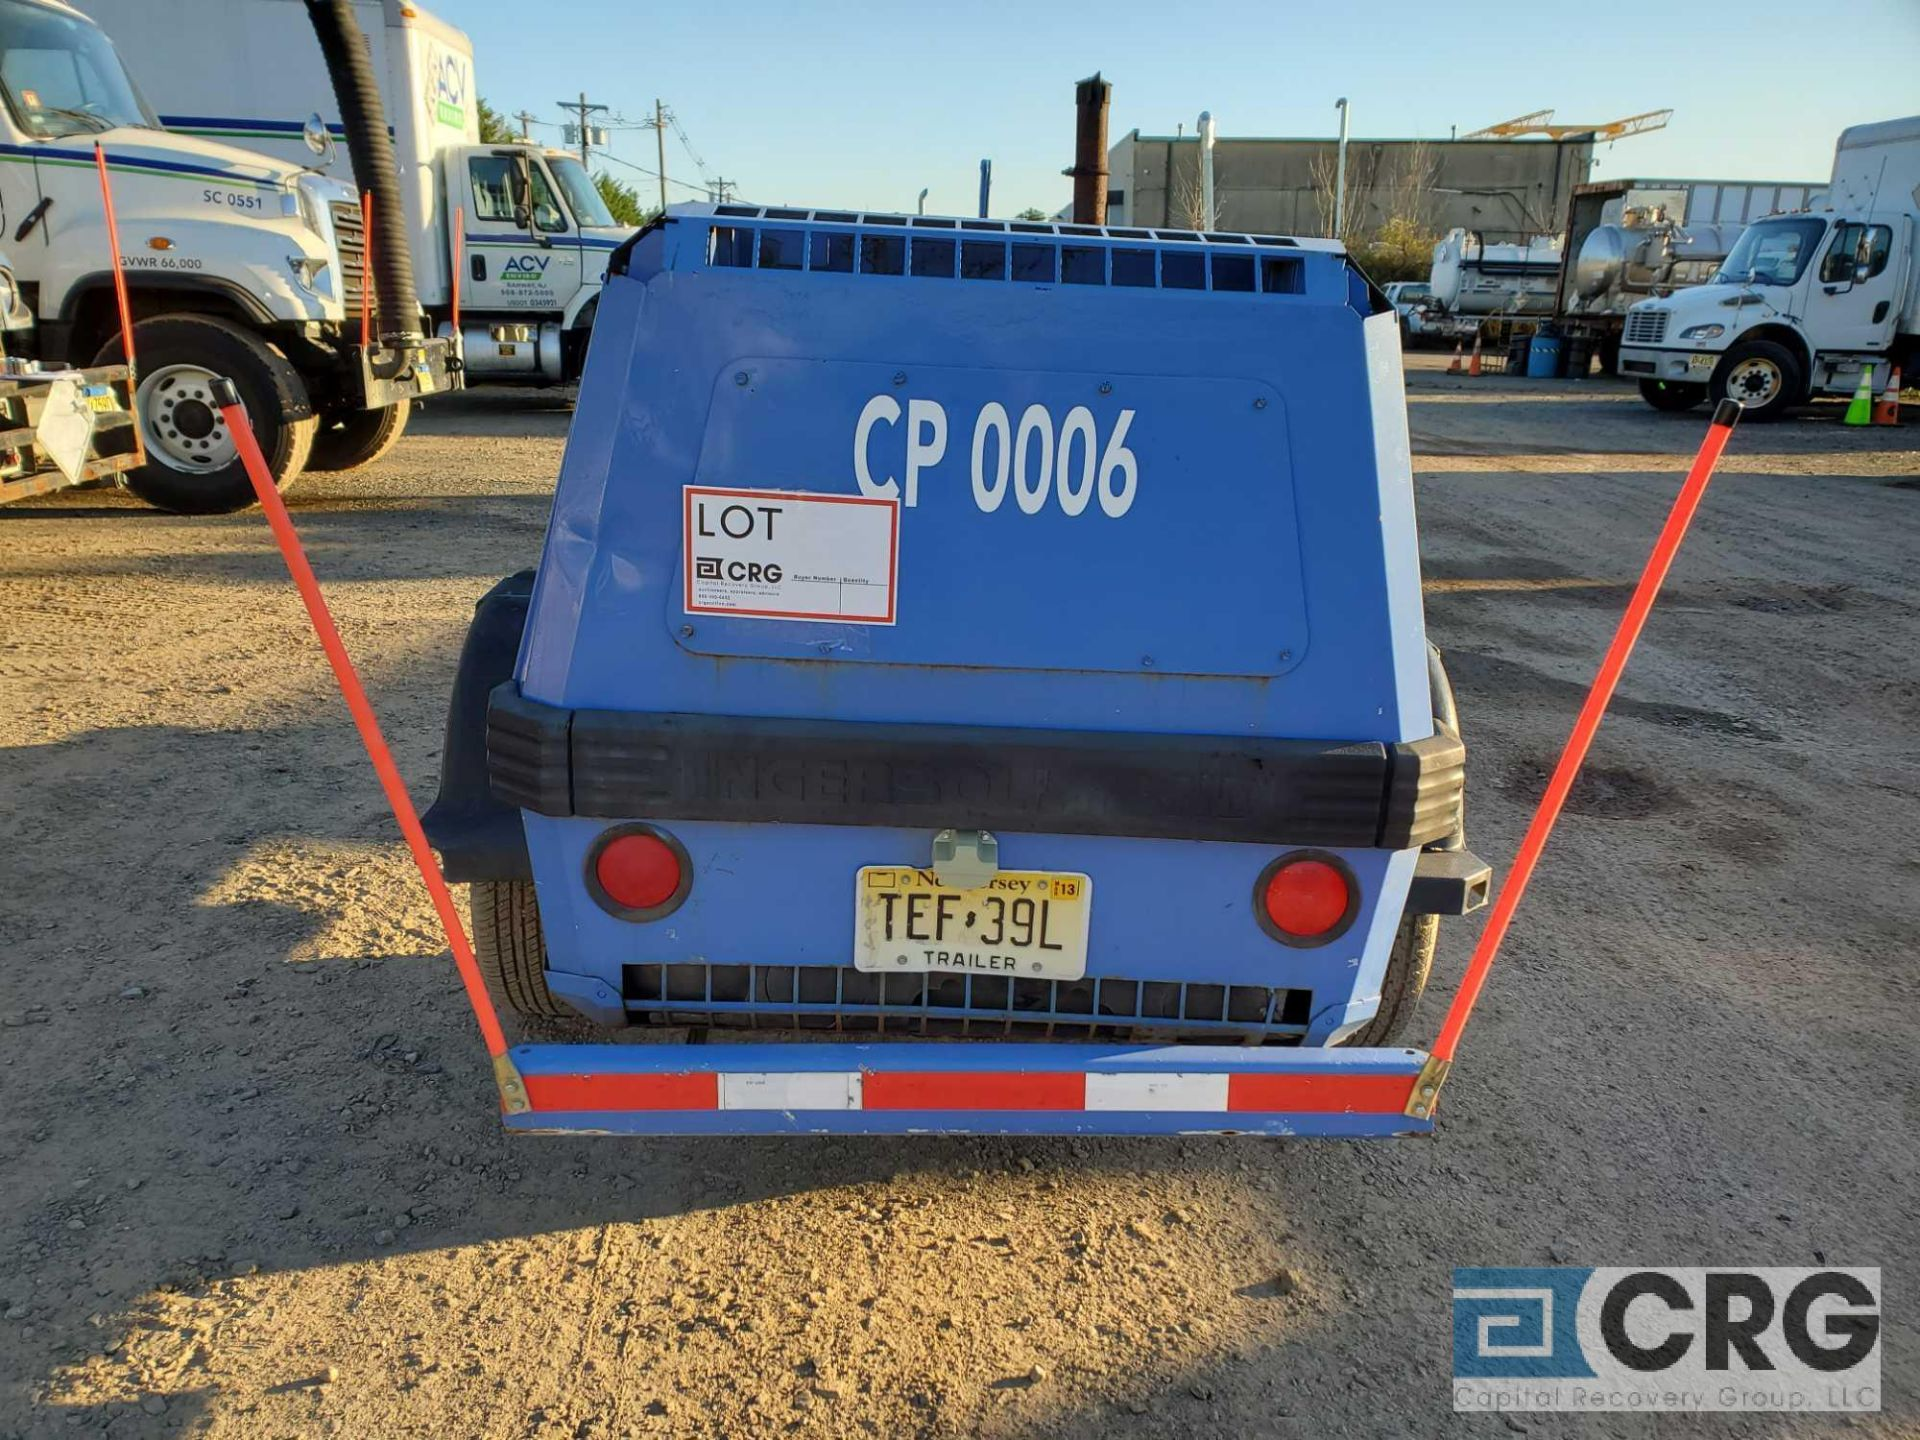 1997 Ingersoll Rand P185WJD tag along Air Compressor - Image 3 of 7